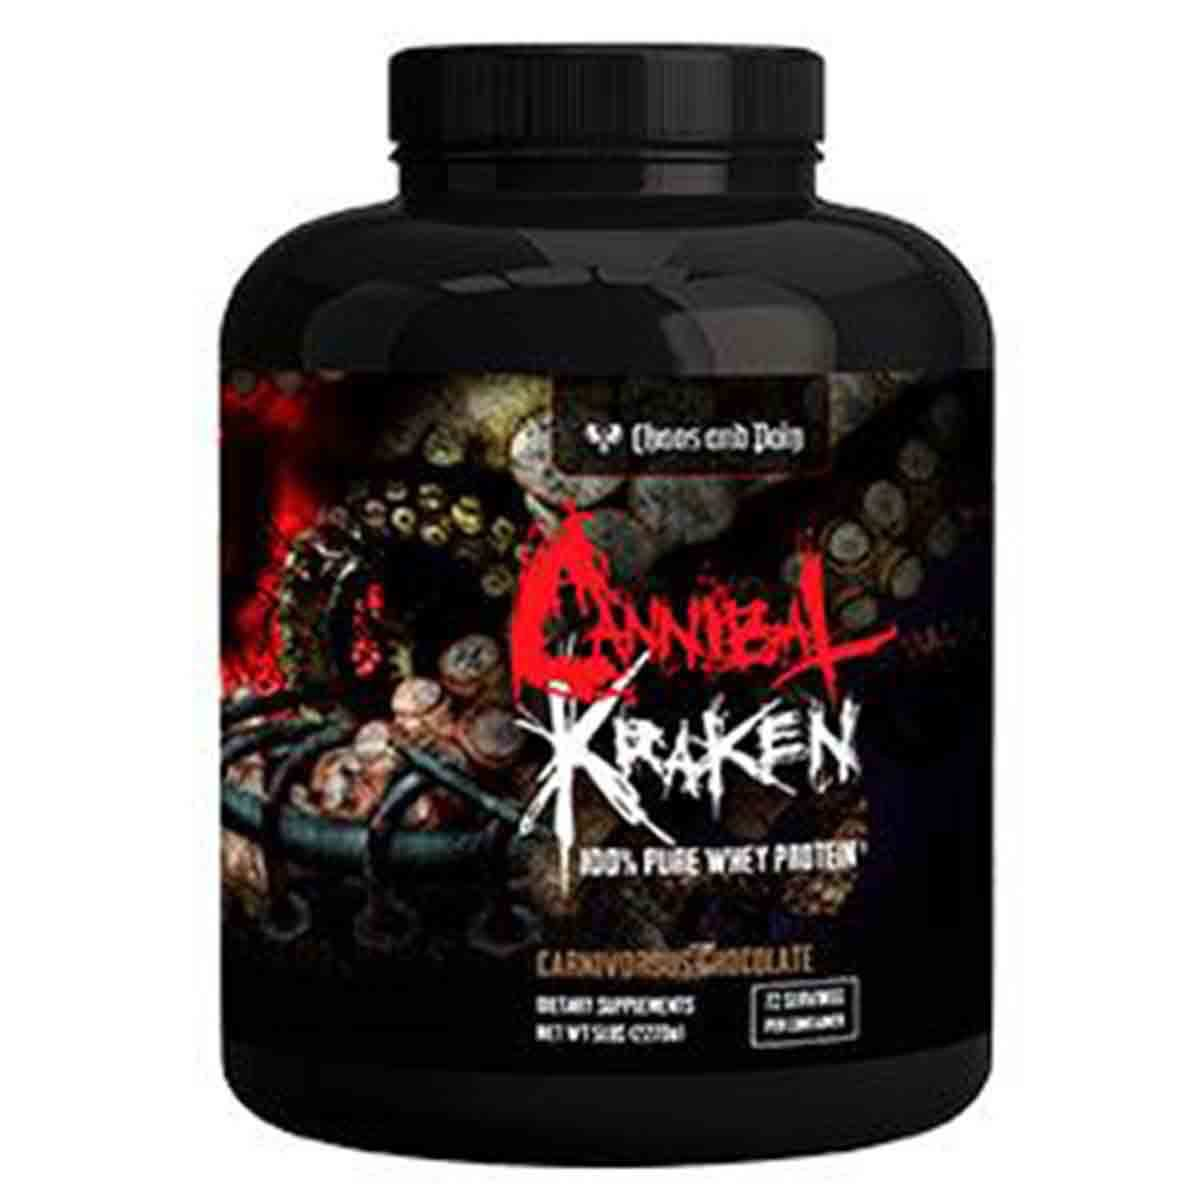 Chaos and Pain Cannibal Kraken Whey